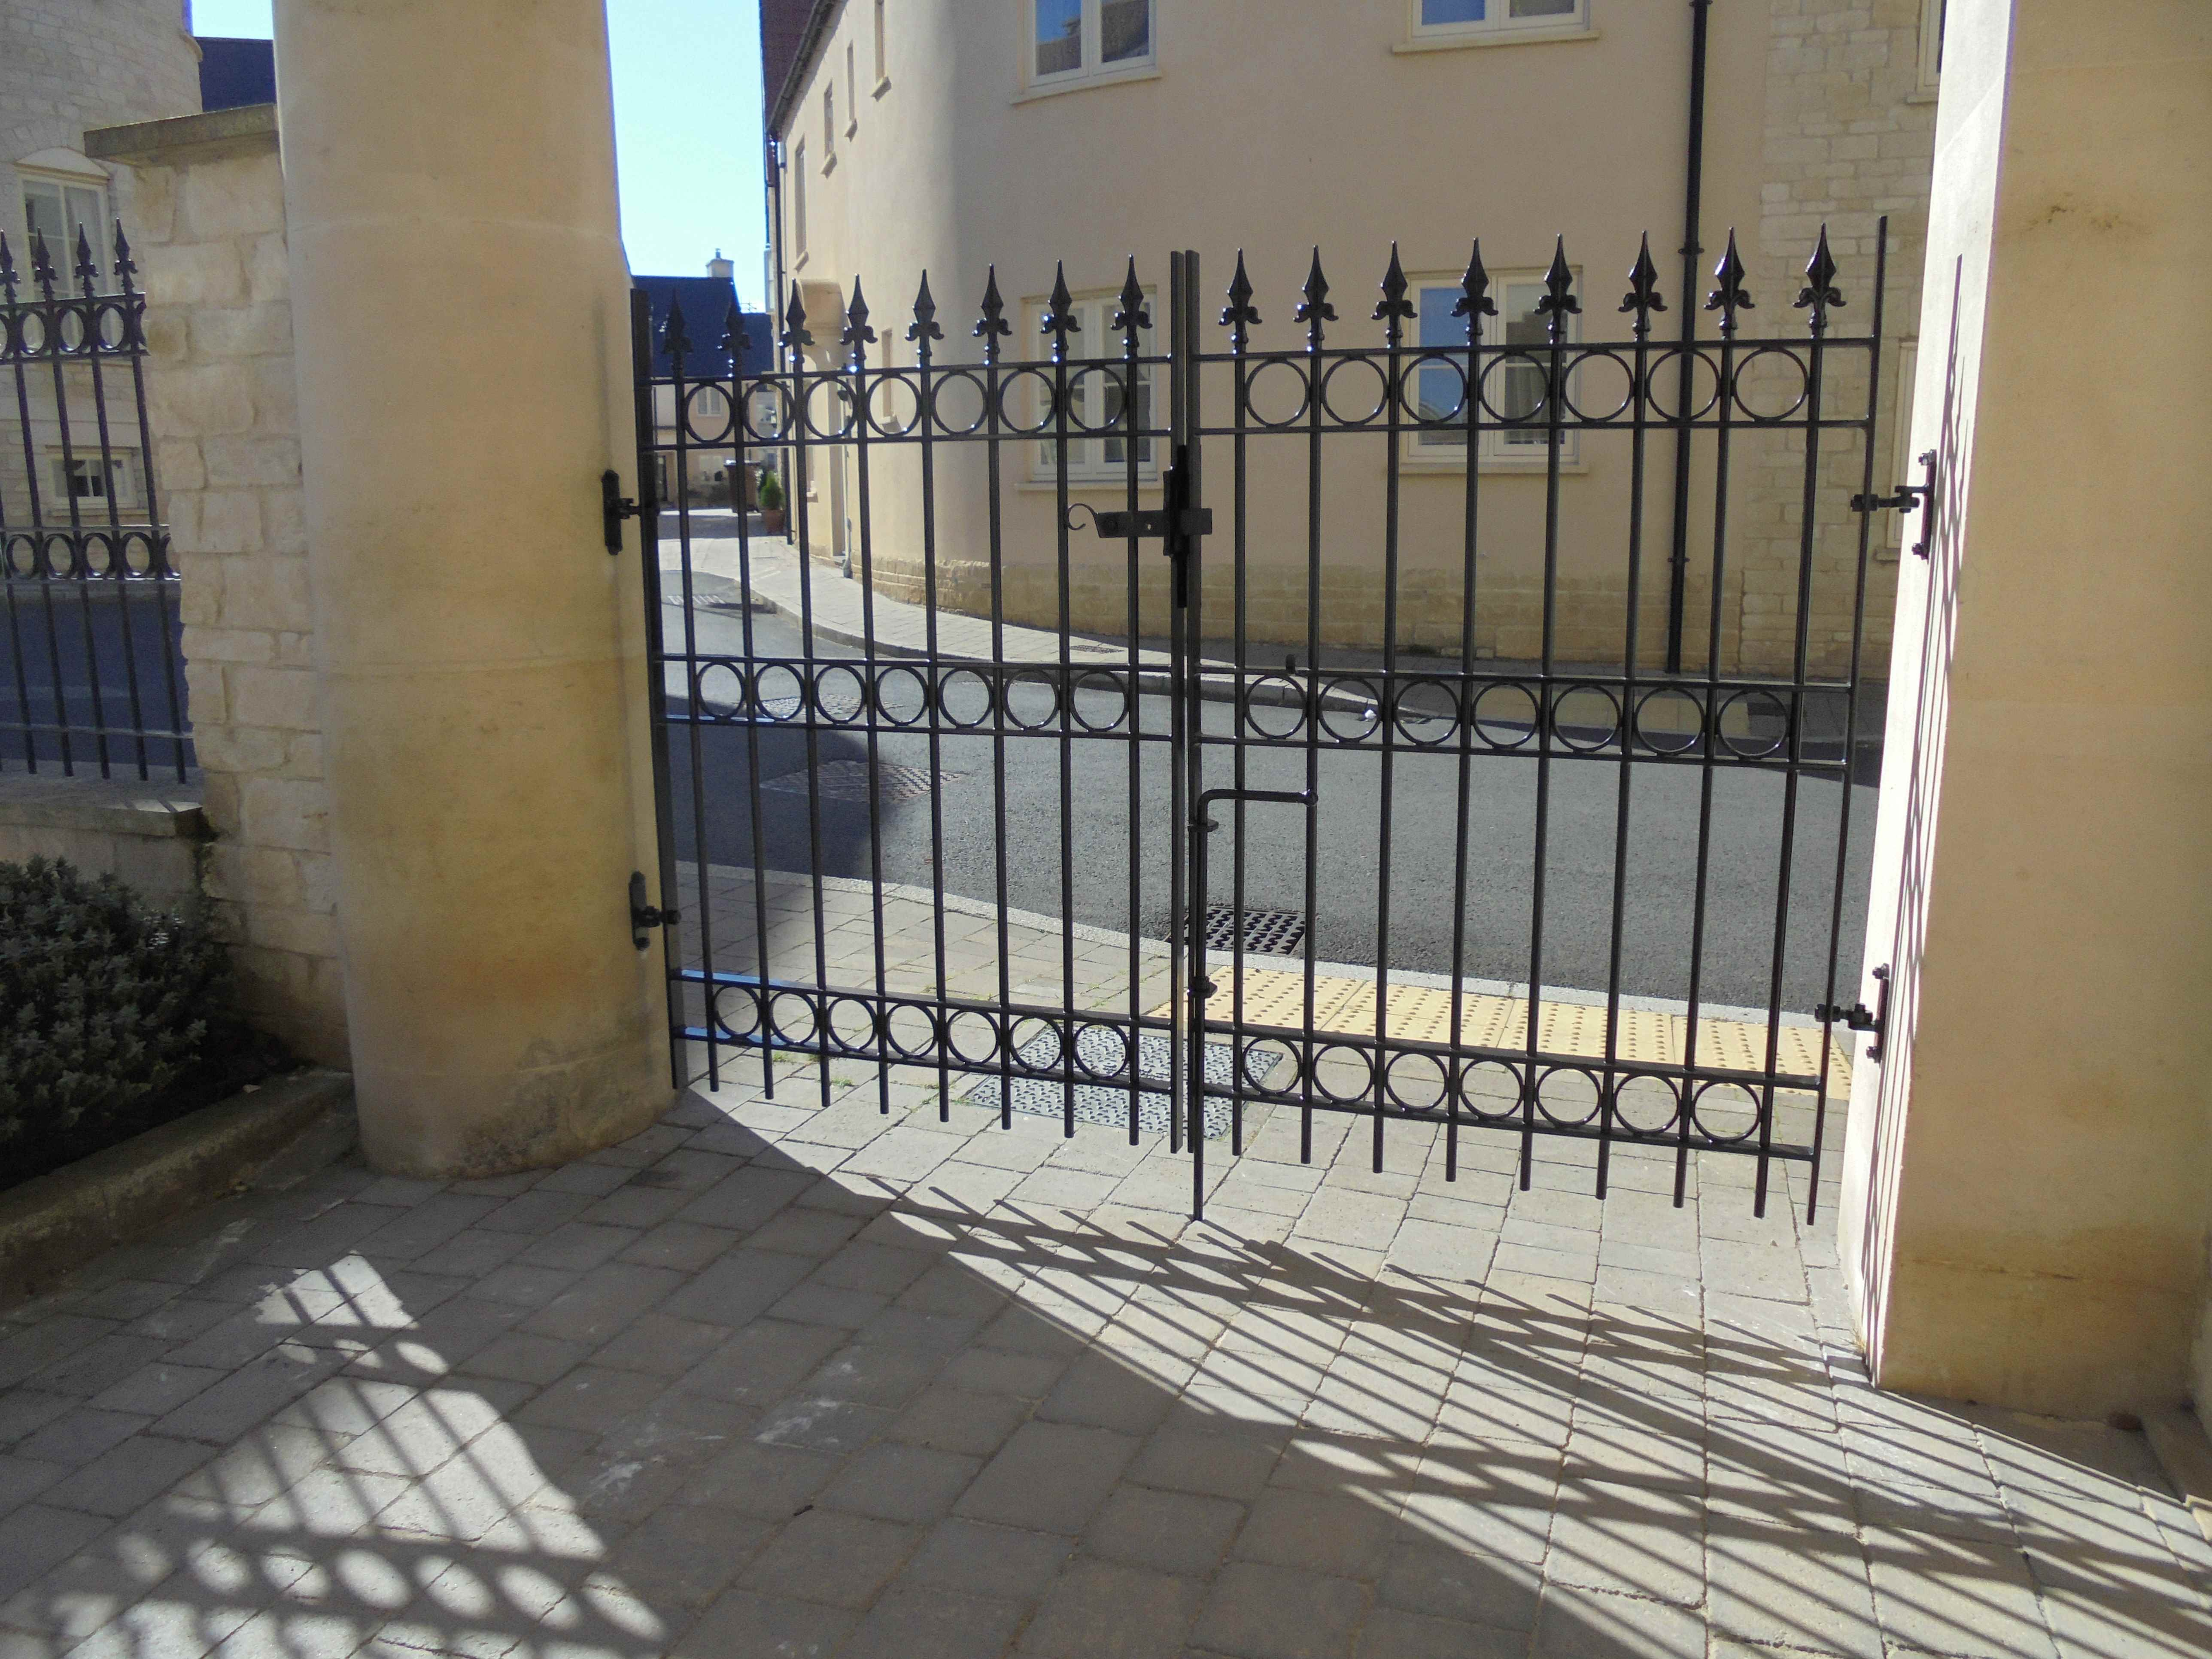 driveway-gates-adapted-staffordshireother